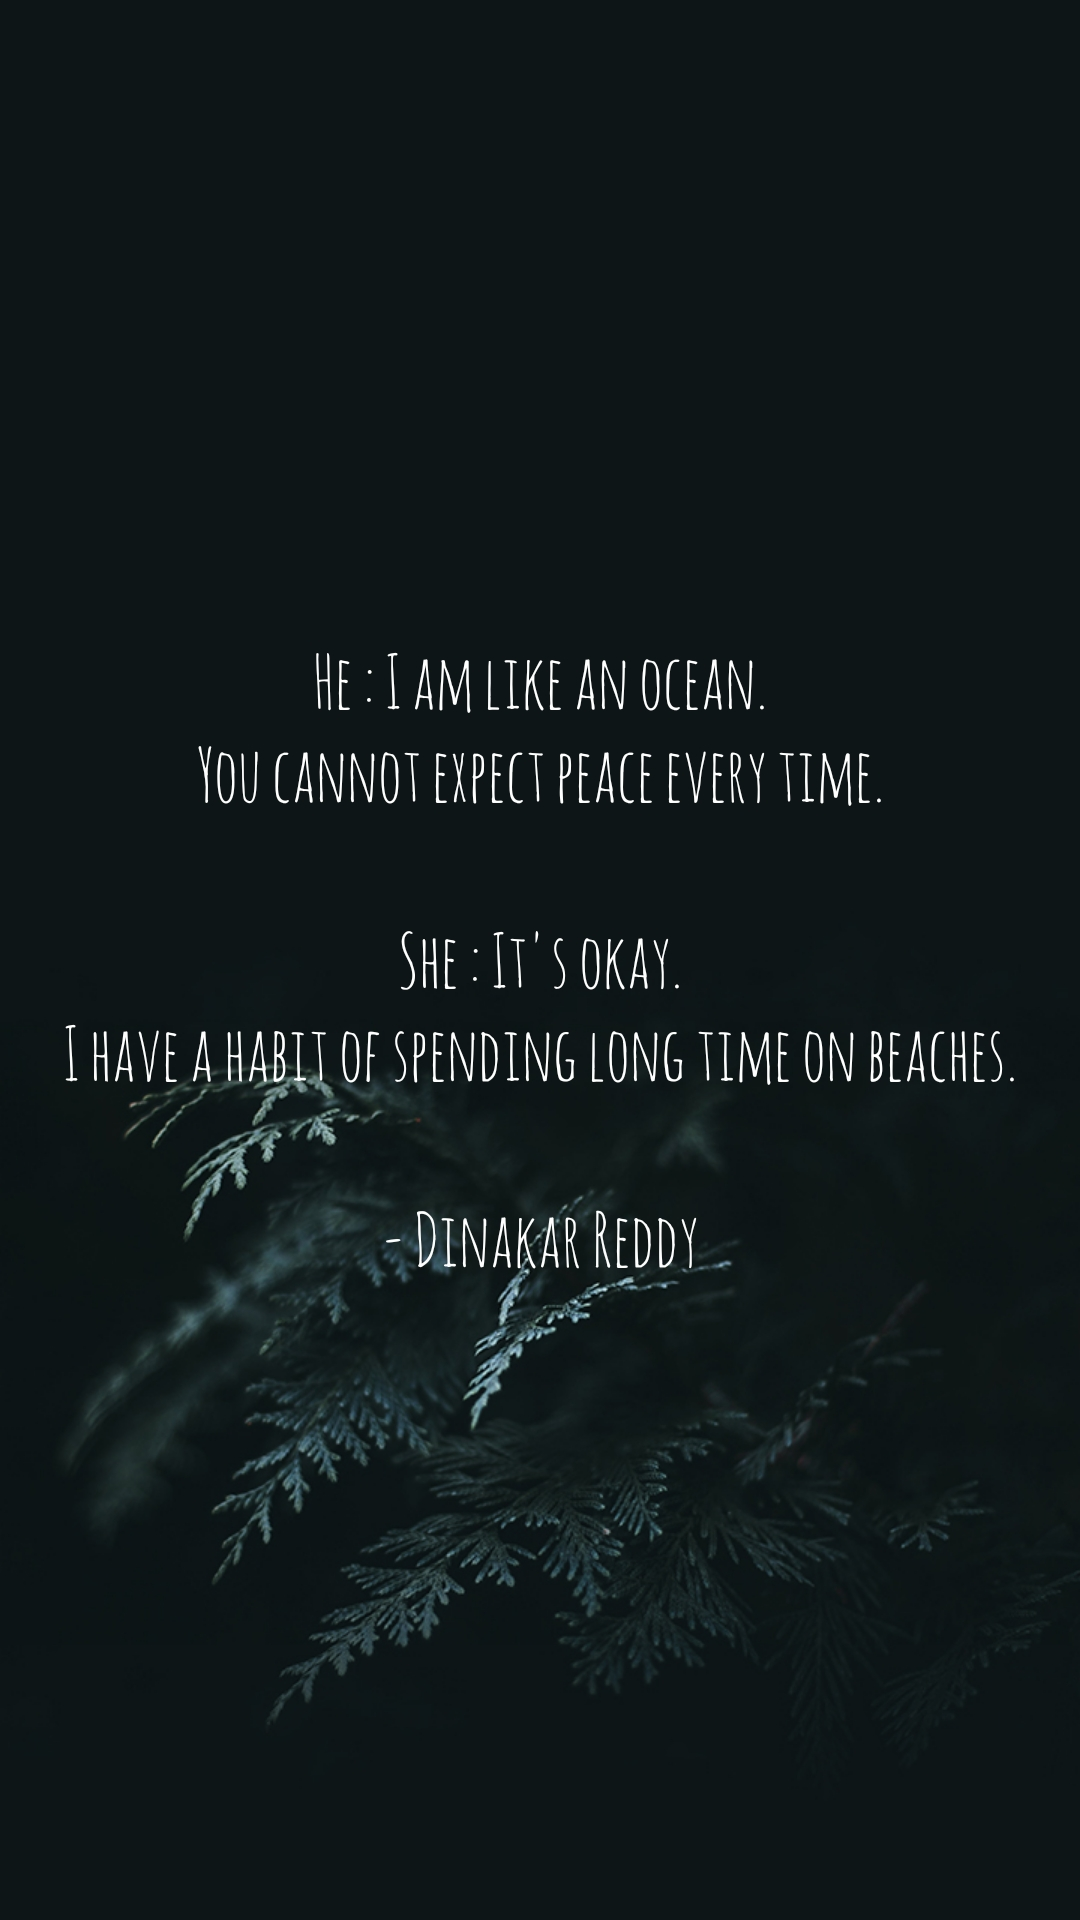 He : I am like an ocean. You cannot expect peace every time.  She : It's okay. I have a habit of spending long time on beaches.  - Dinakar Reddy